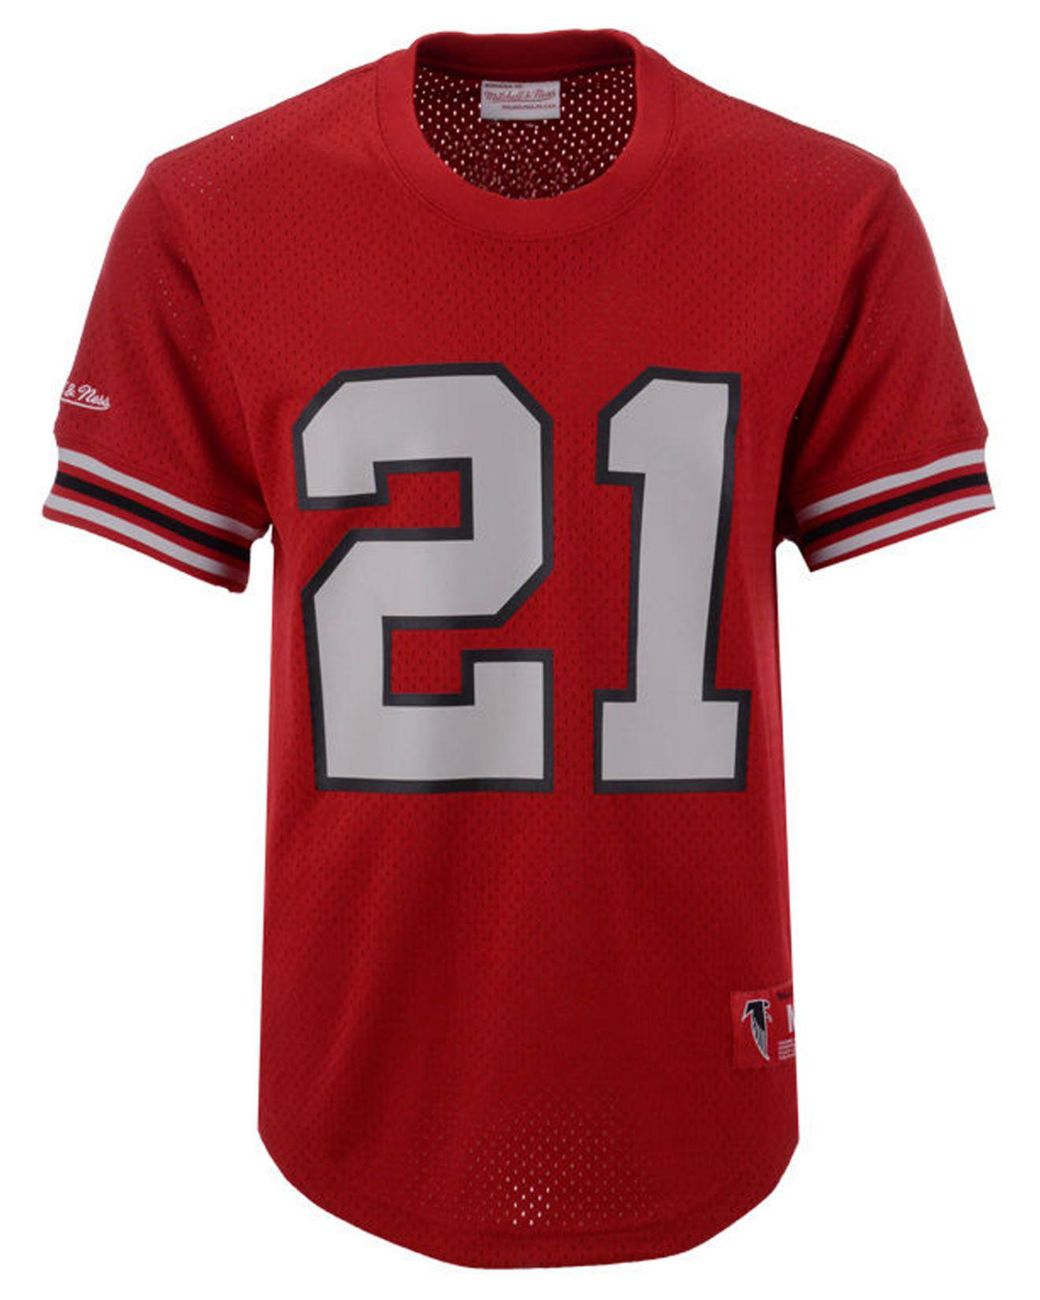 newest 2591e 21916 Men's Red Deion Sanders Atlanta Falcons Mesh Name And Number Crewneck Jersey